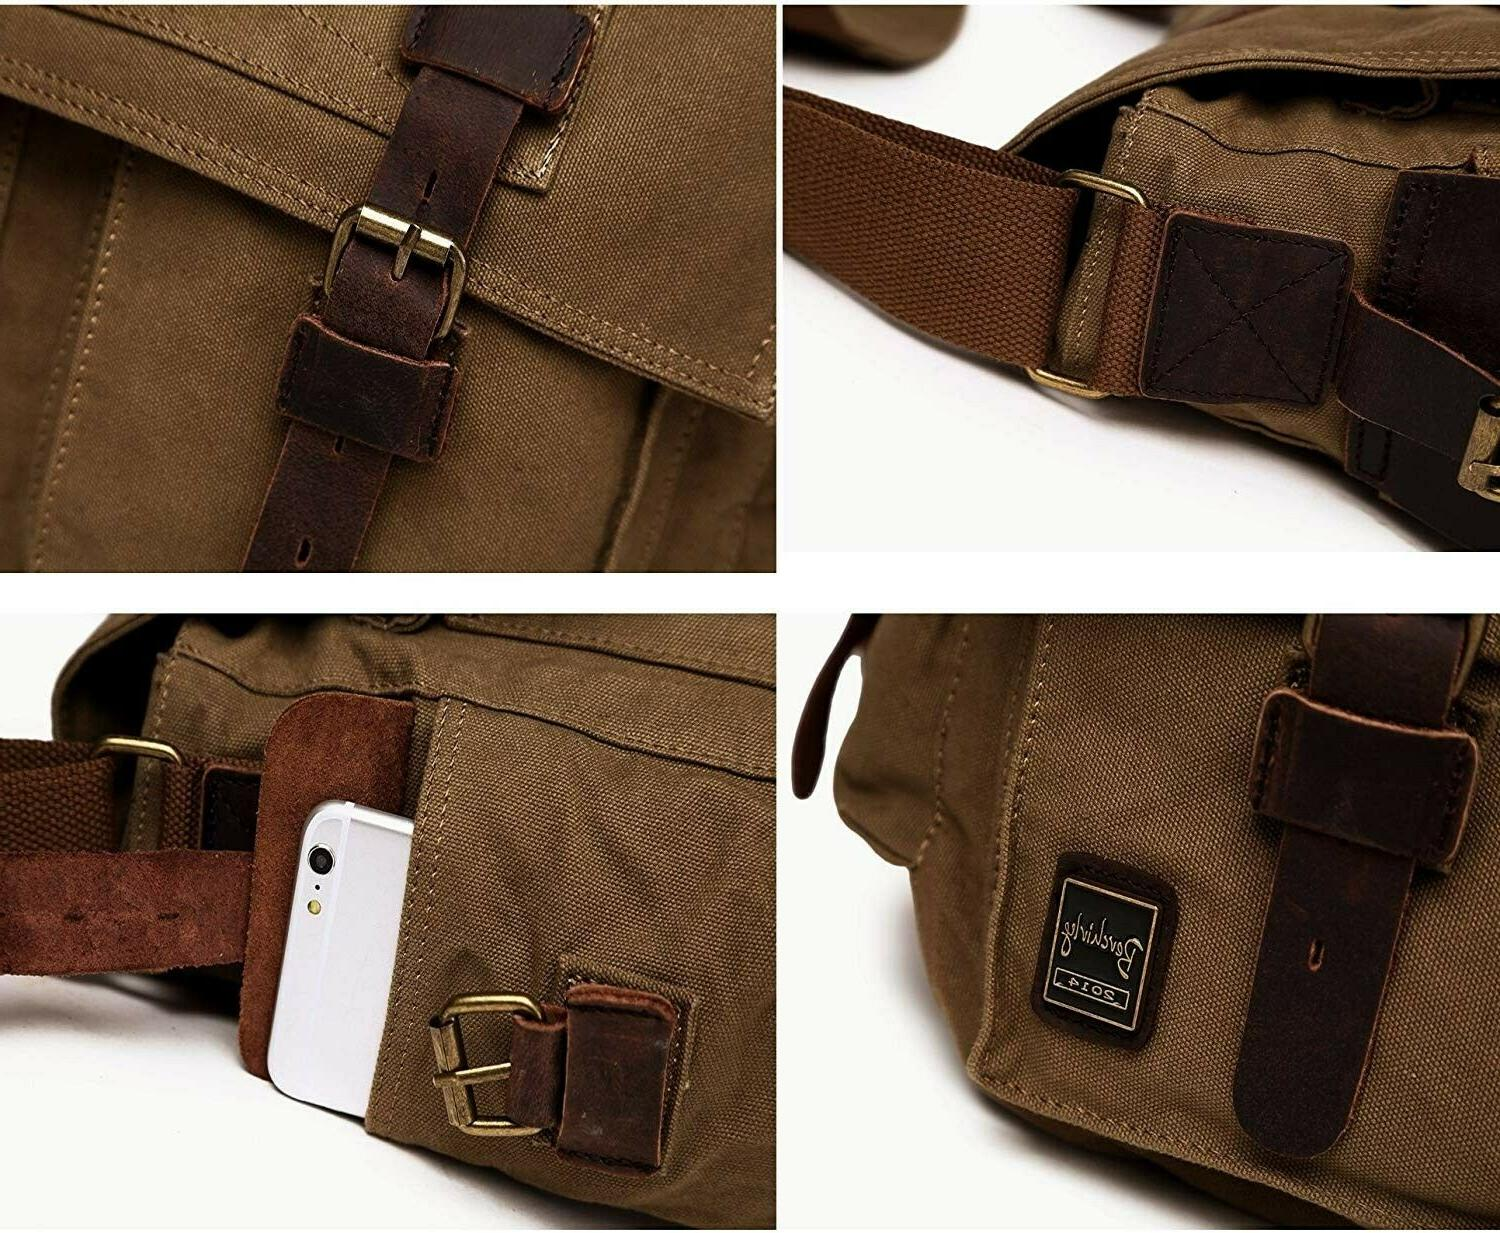 Berchirly Vintage Messenger Bag for Inch army